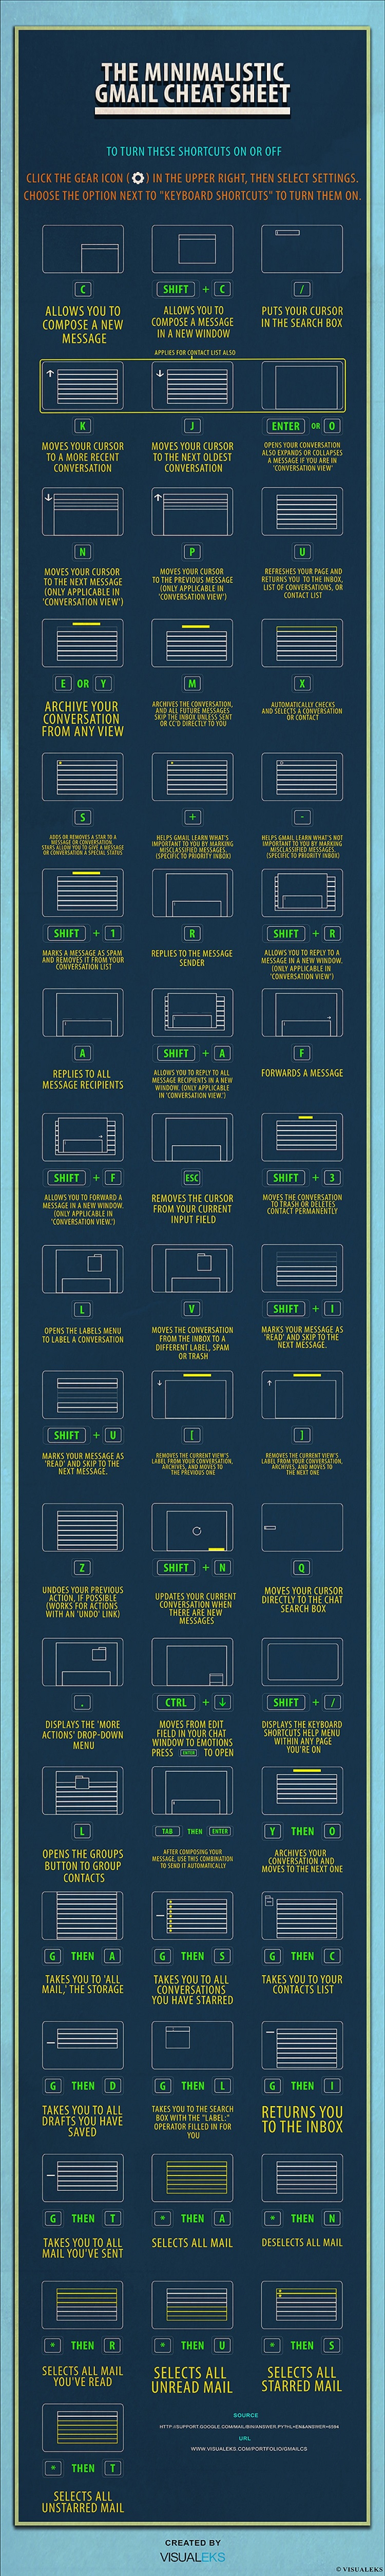 the-minimalistic-gmail-cheat-sheet_516f59138d941_w1500